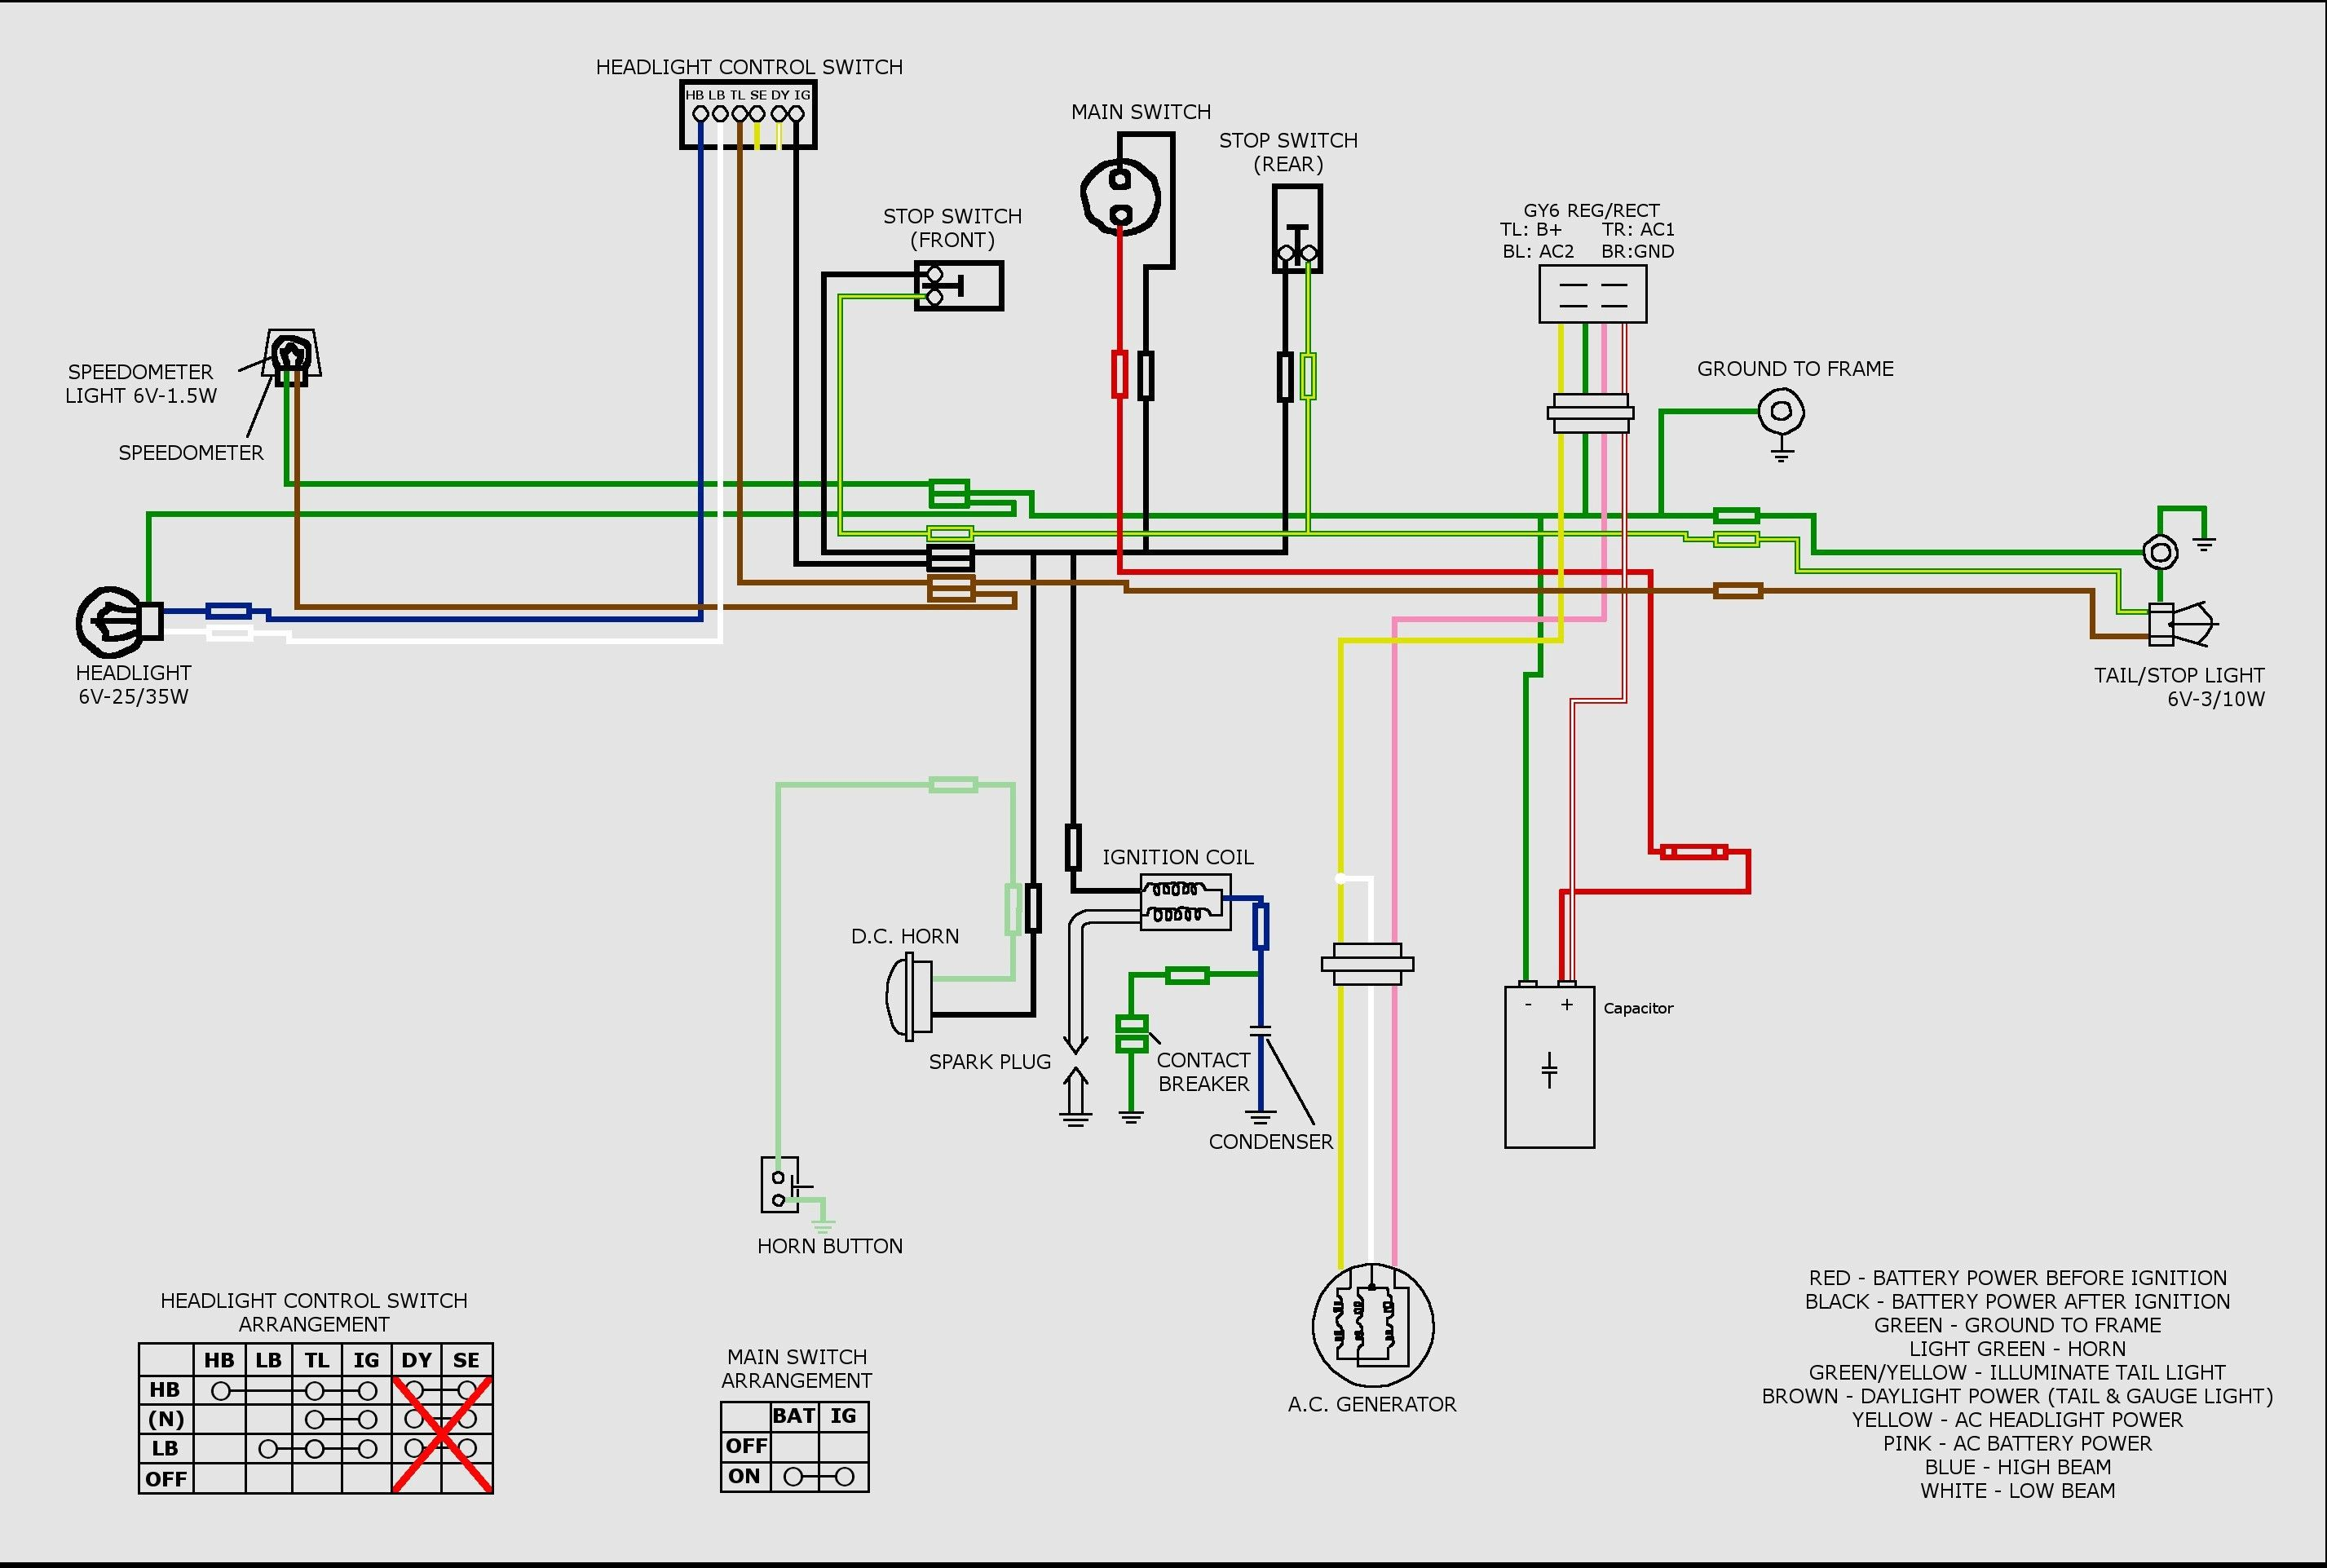 Mad Dog Scooter Wiring Diagram - Wiring Diagrams Mad Dog Trike Wiring Diagram on